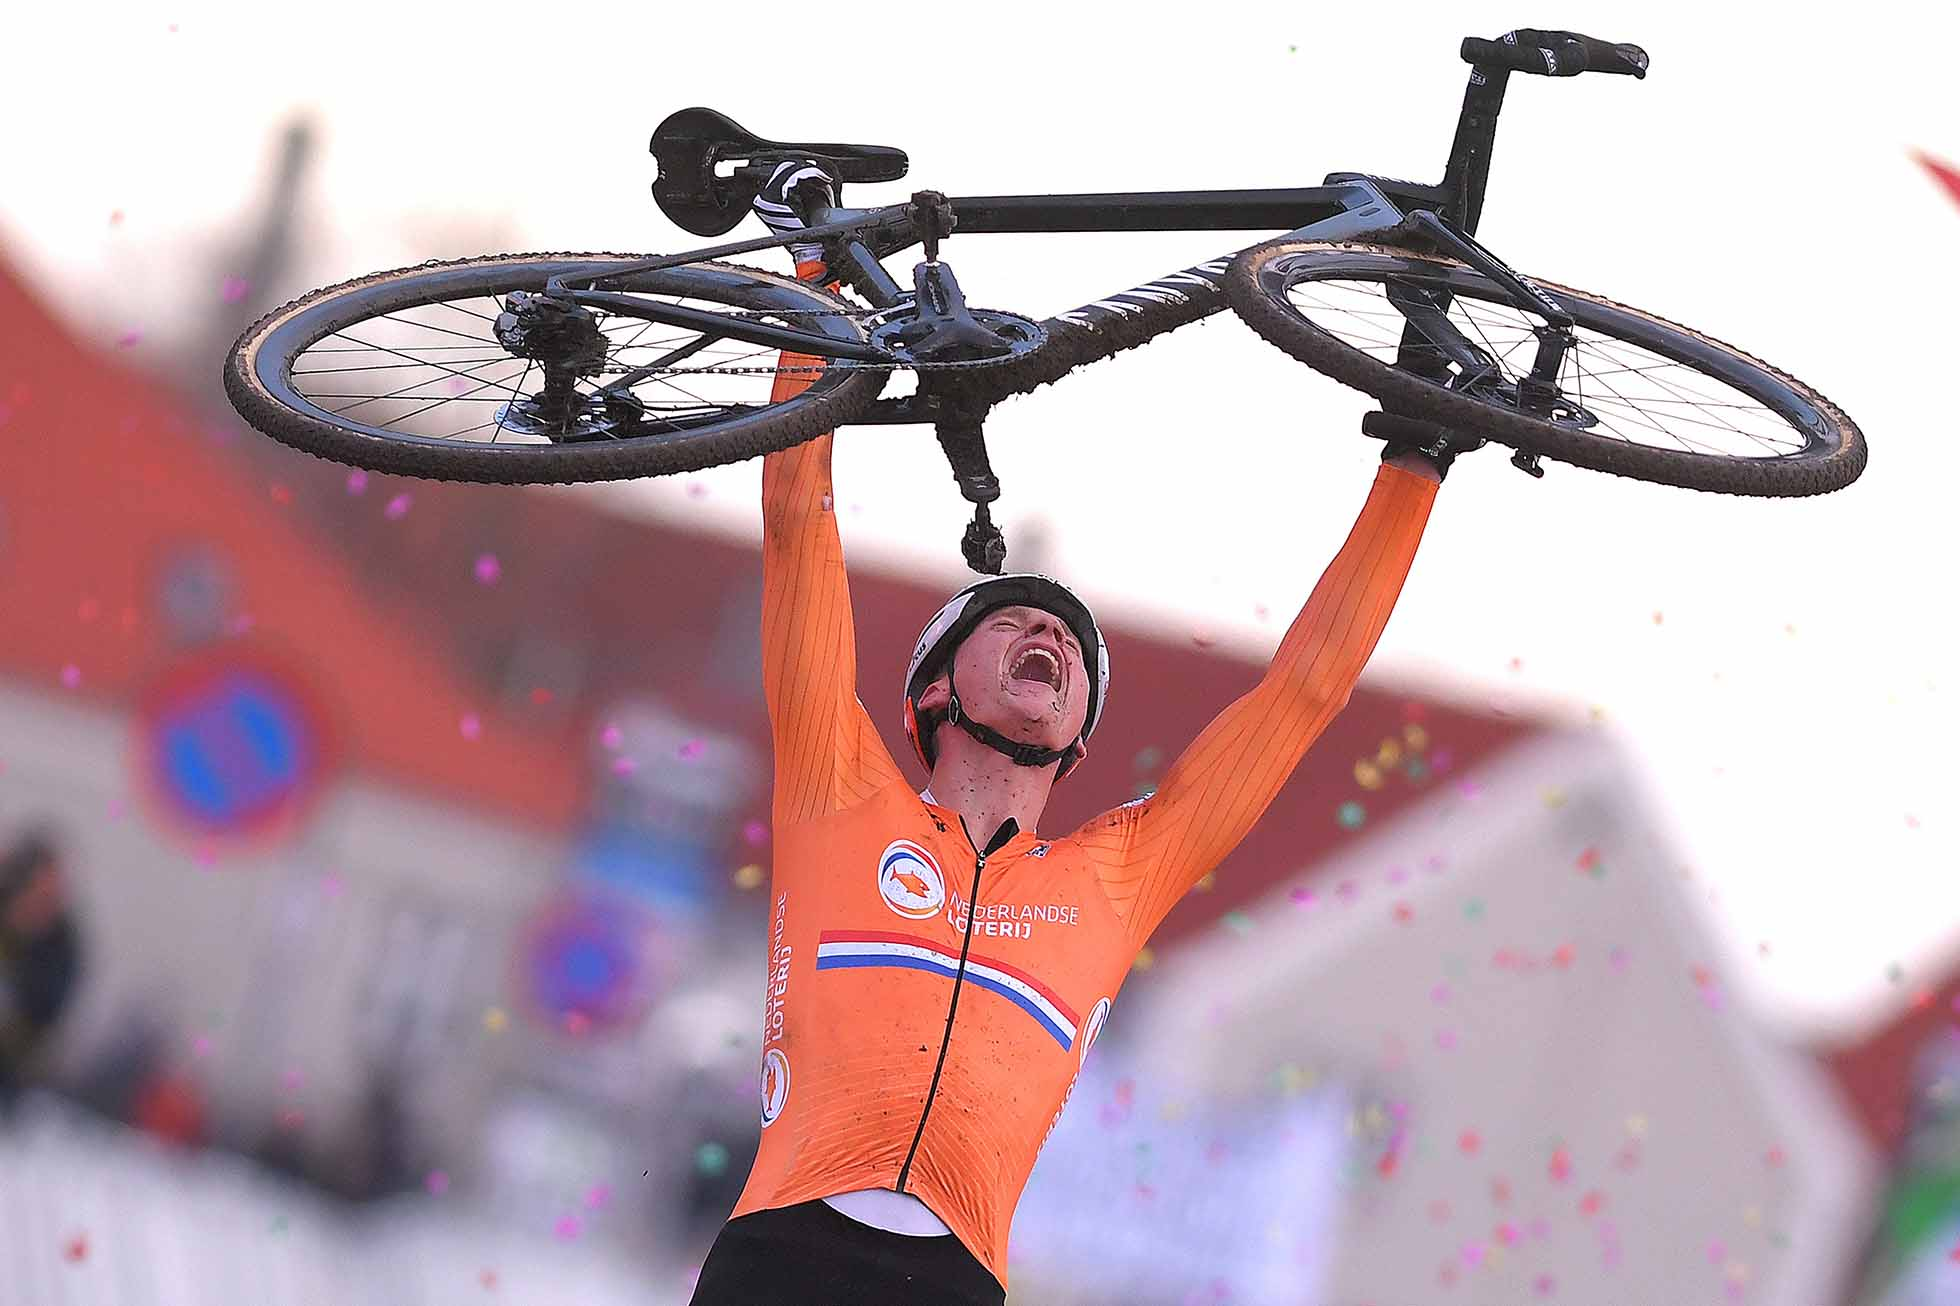 BOGENSE, DENMARK - FEBRUARY 03: Arrival / Mathieu Van Der Poel of The Netherlands and Team The Netherlands / Celebration / during the 70th Cyclo-cross World Championships Bogense 2019, Men Elite / Cross Denmark / @Bogense2019 / on February 3, 2019 in Bogense, Denmark. (Photo by Luc Claessen/Getty Images)